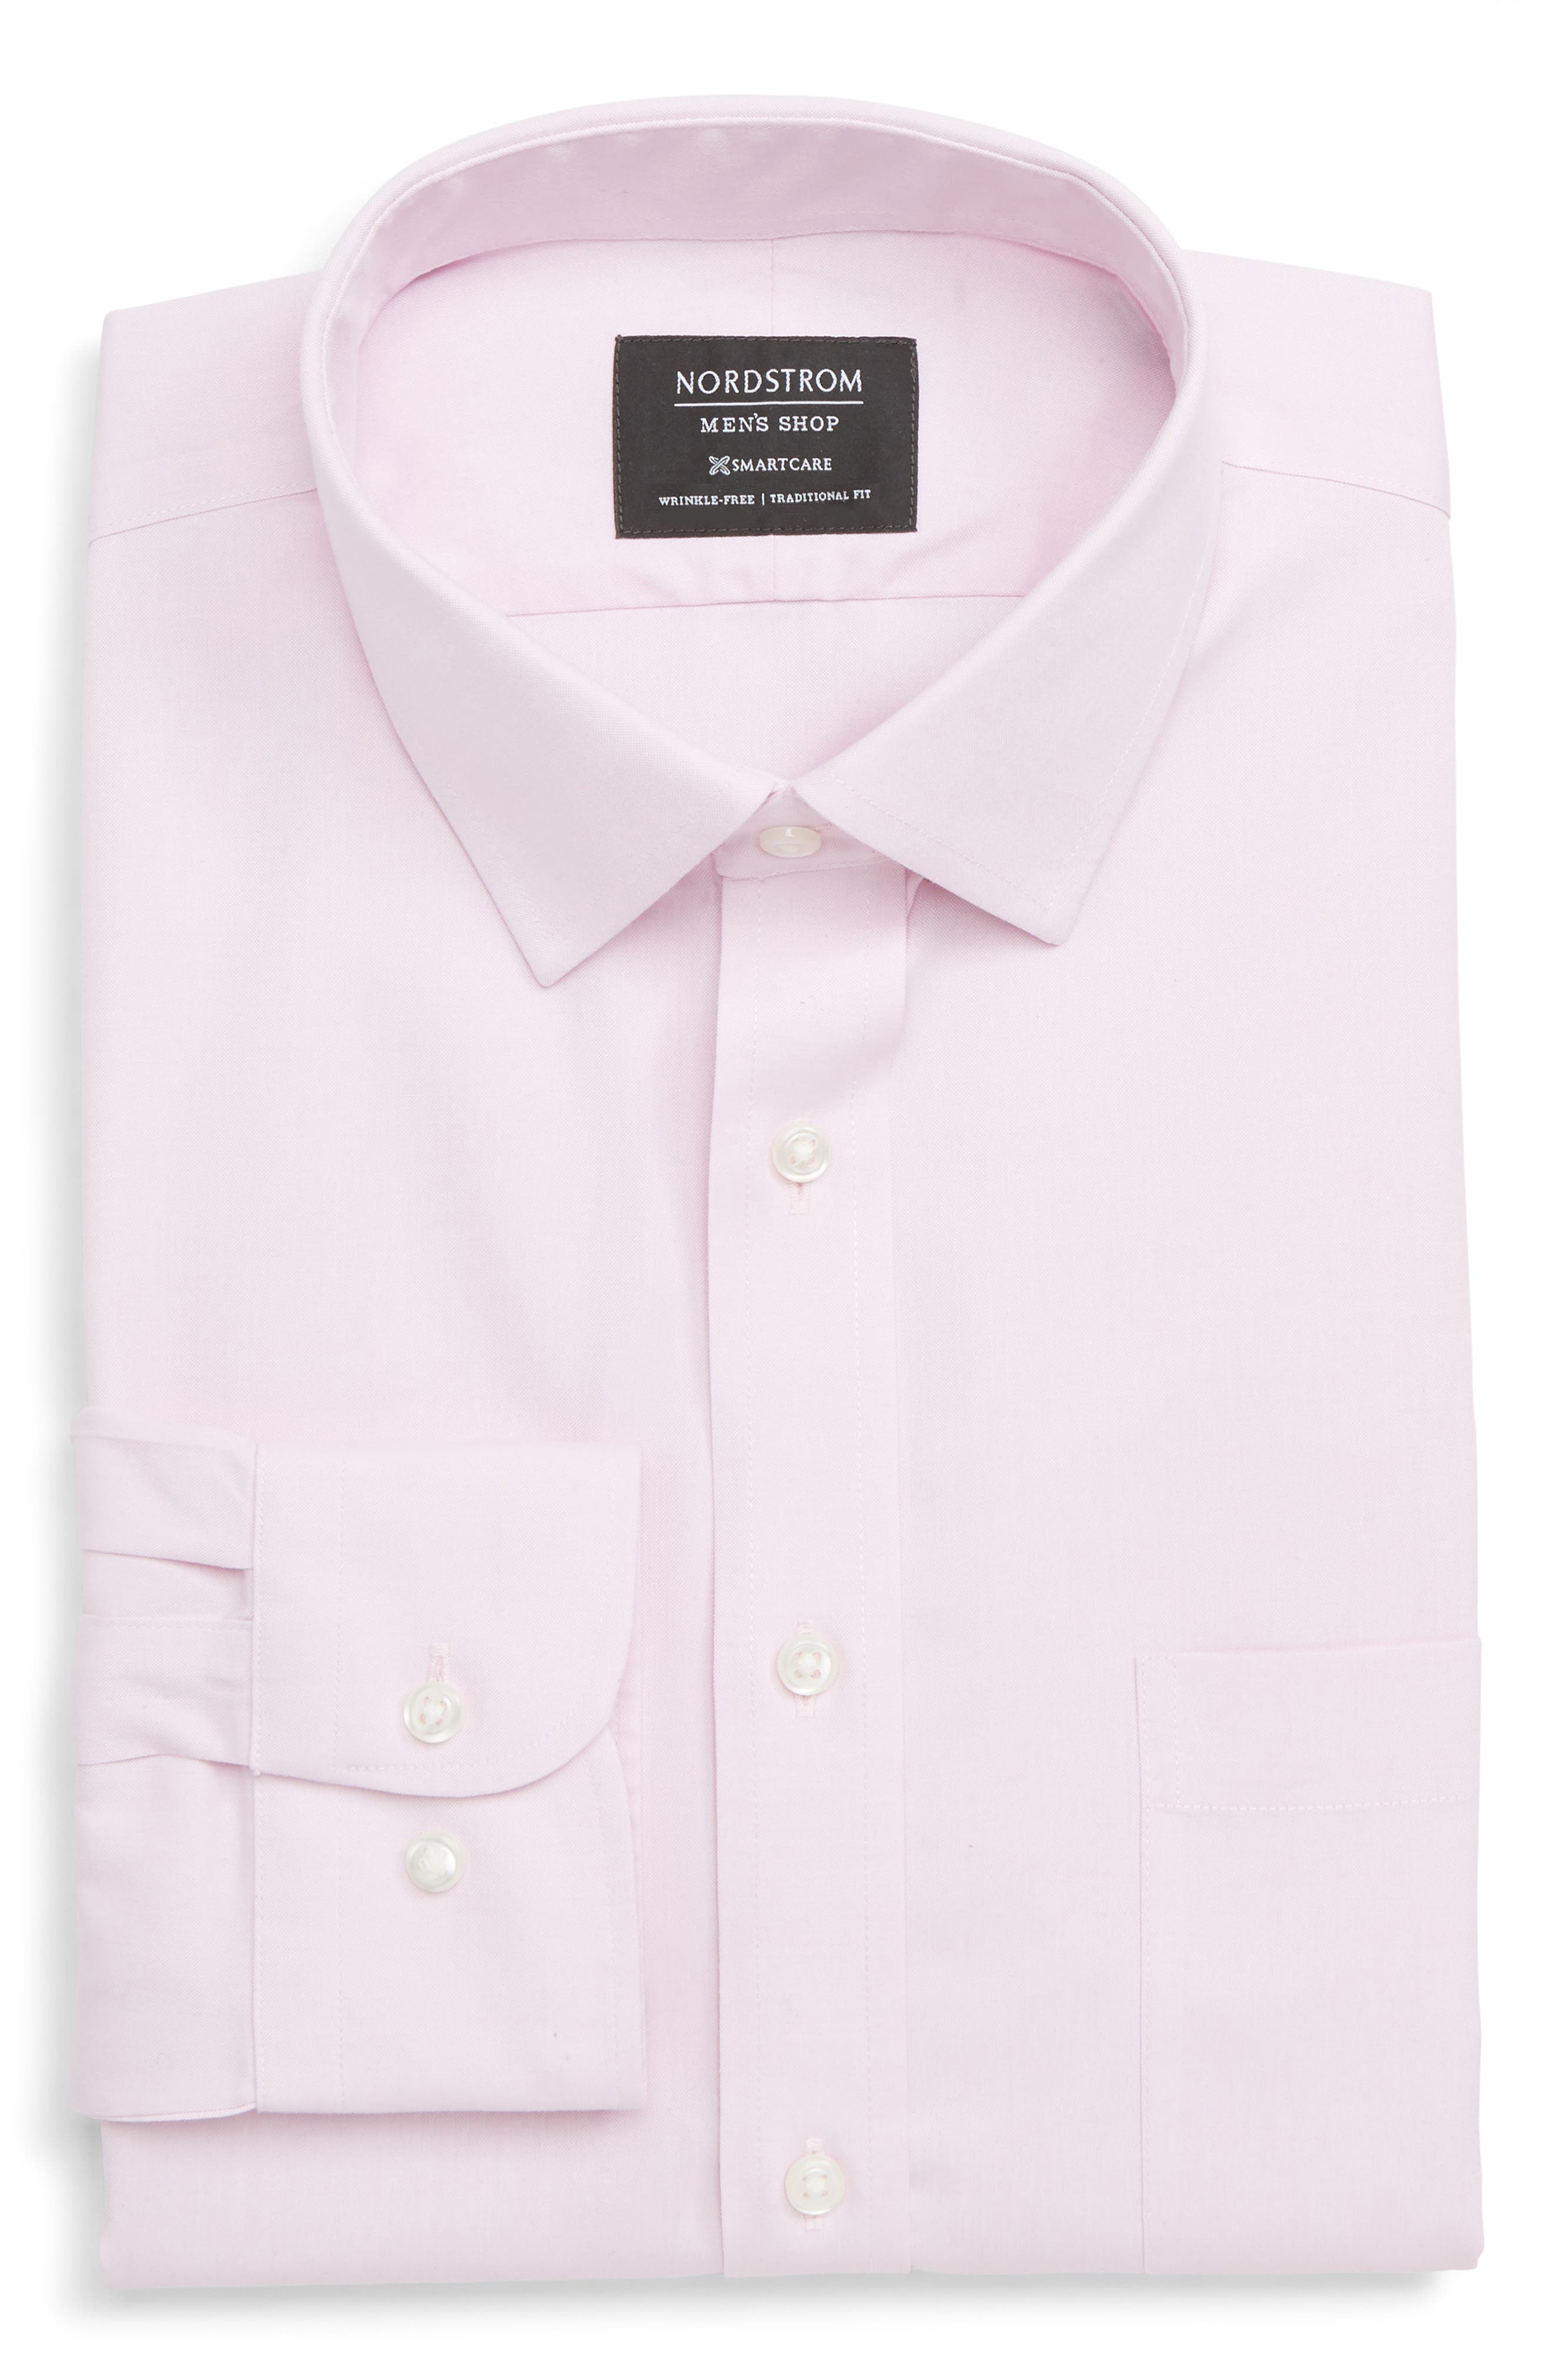 Nordstrom Shop Smartcare(TM) Traditional Fit Dress Shirt, Pink